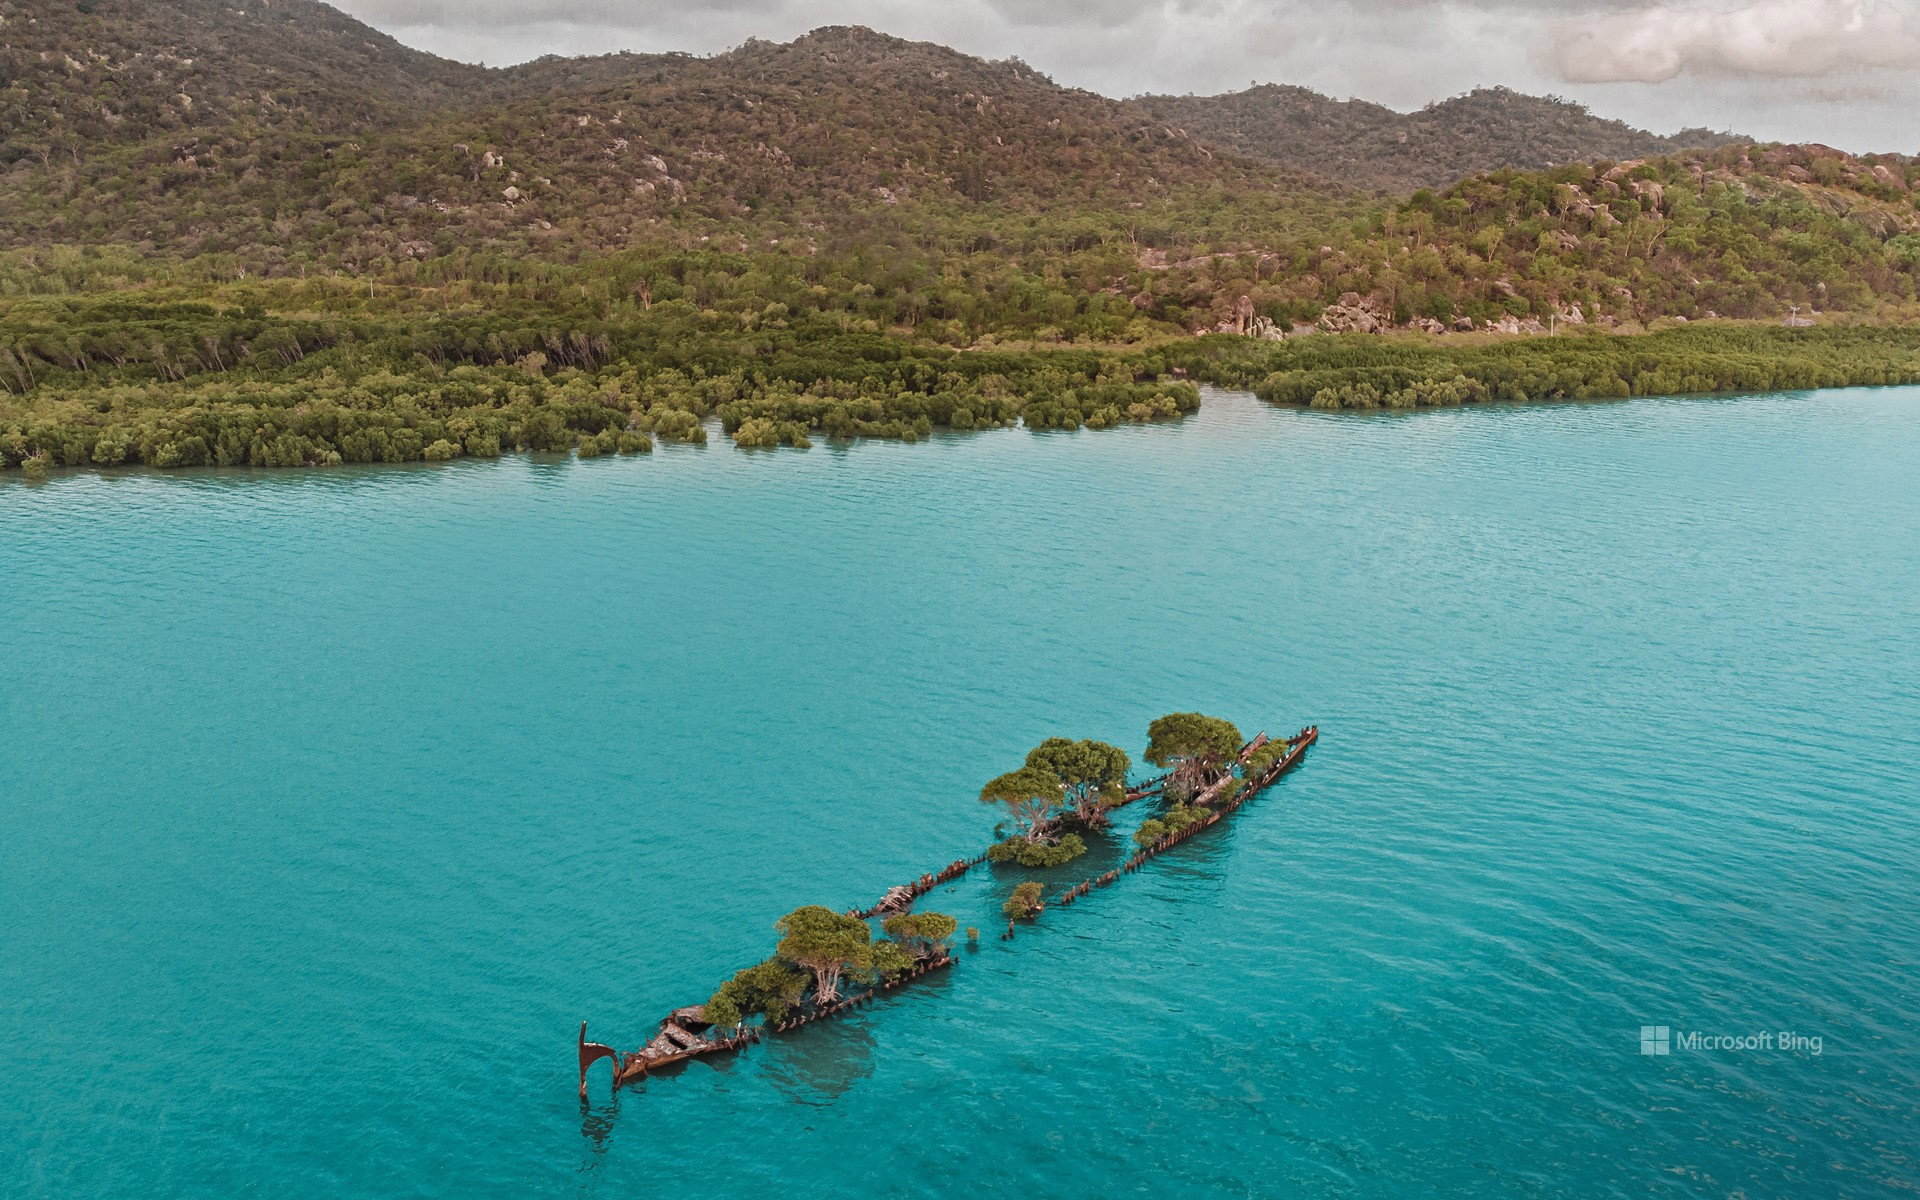 Aerial view of the 'City of Adelaide' shipwreck with trees growing on it, Magnetic Island, Queensland, Australia